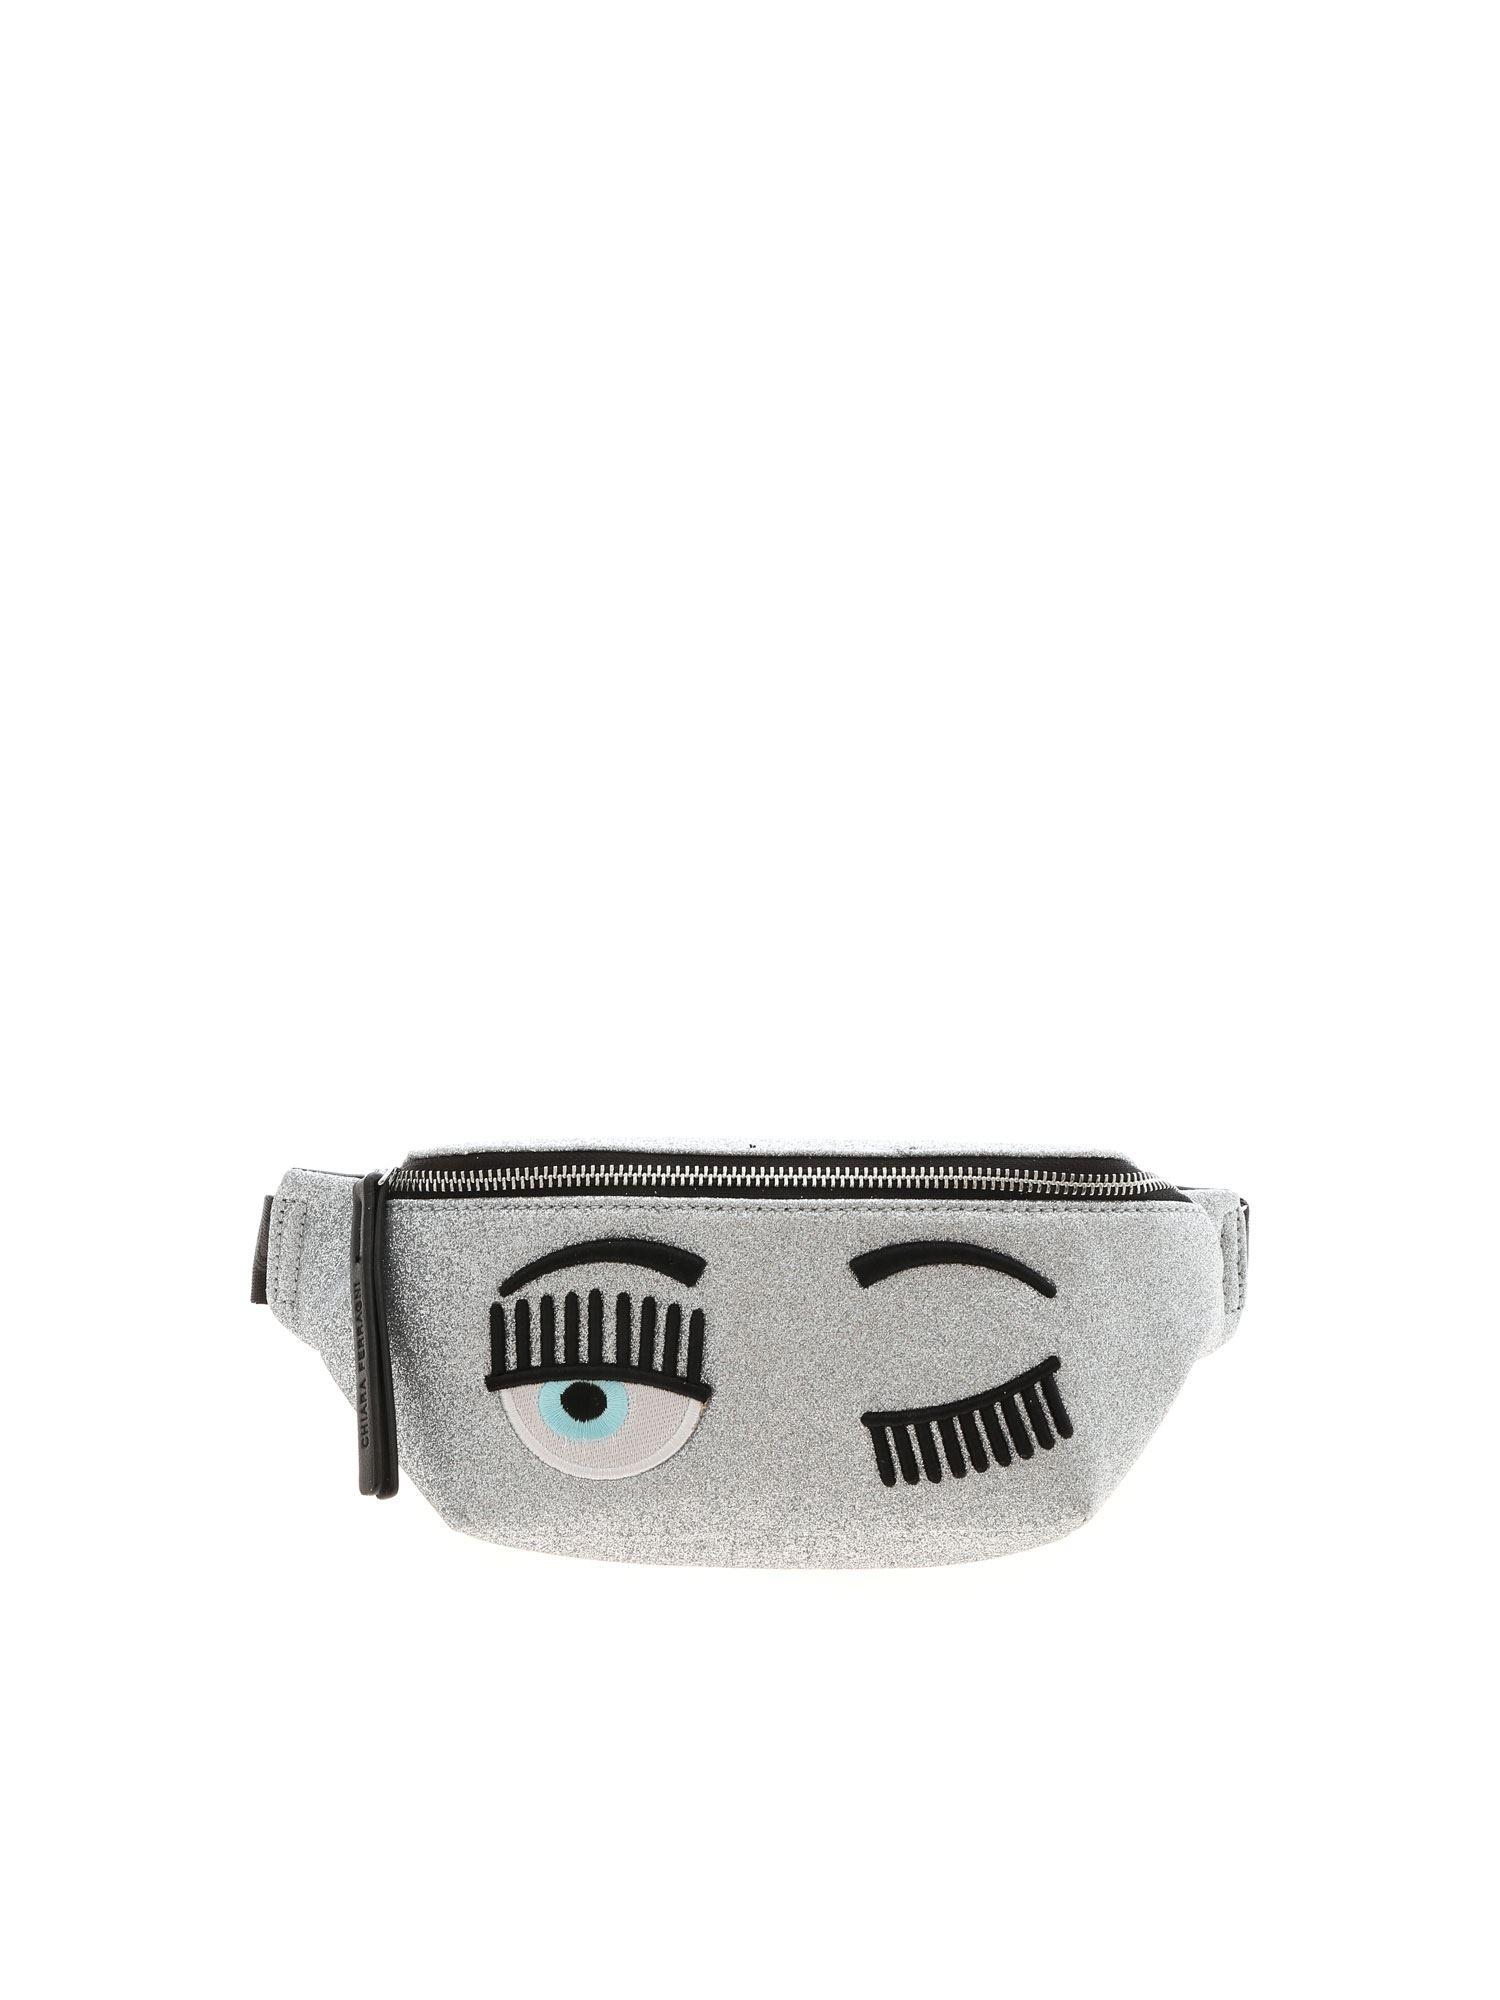 Chiara Ferragni FLIRTING BELT BAG IN SILVER COLOR